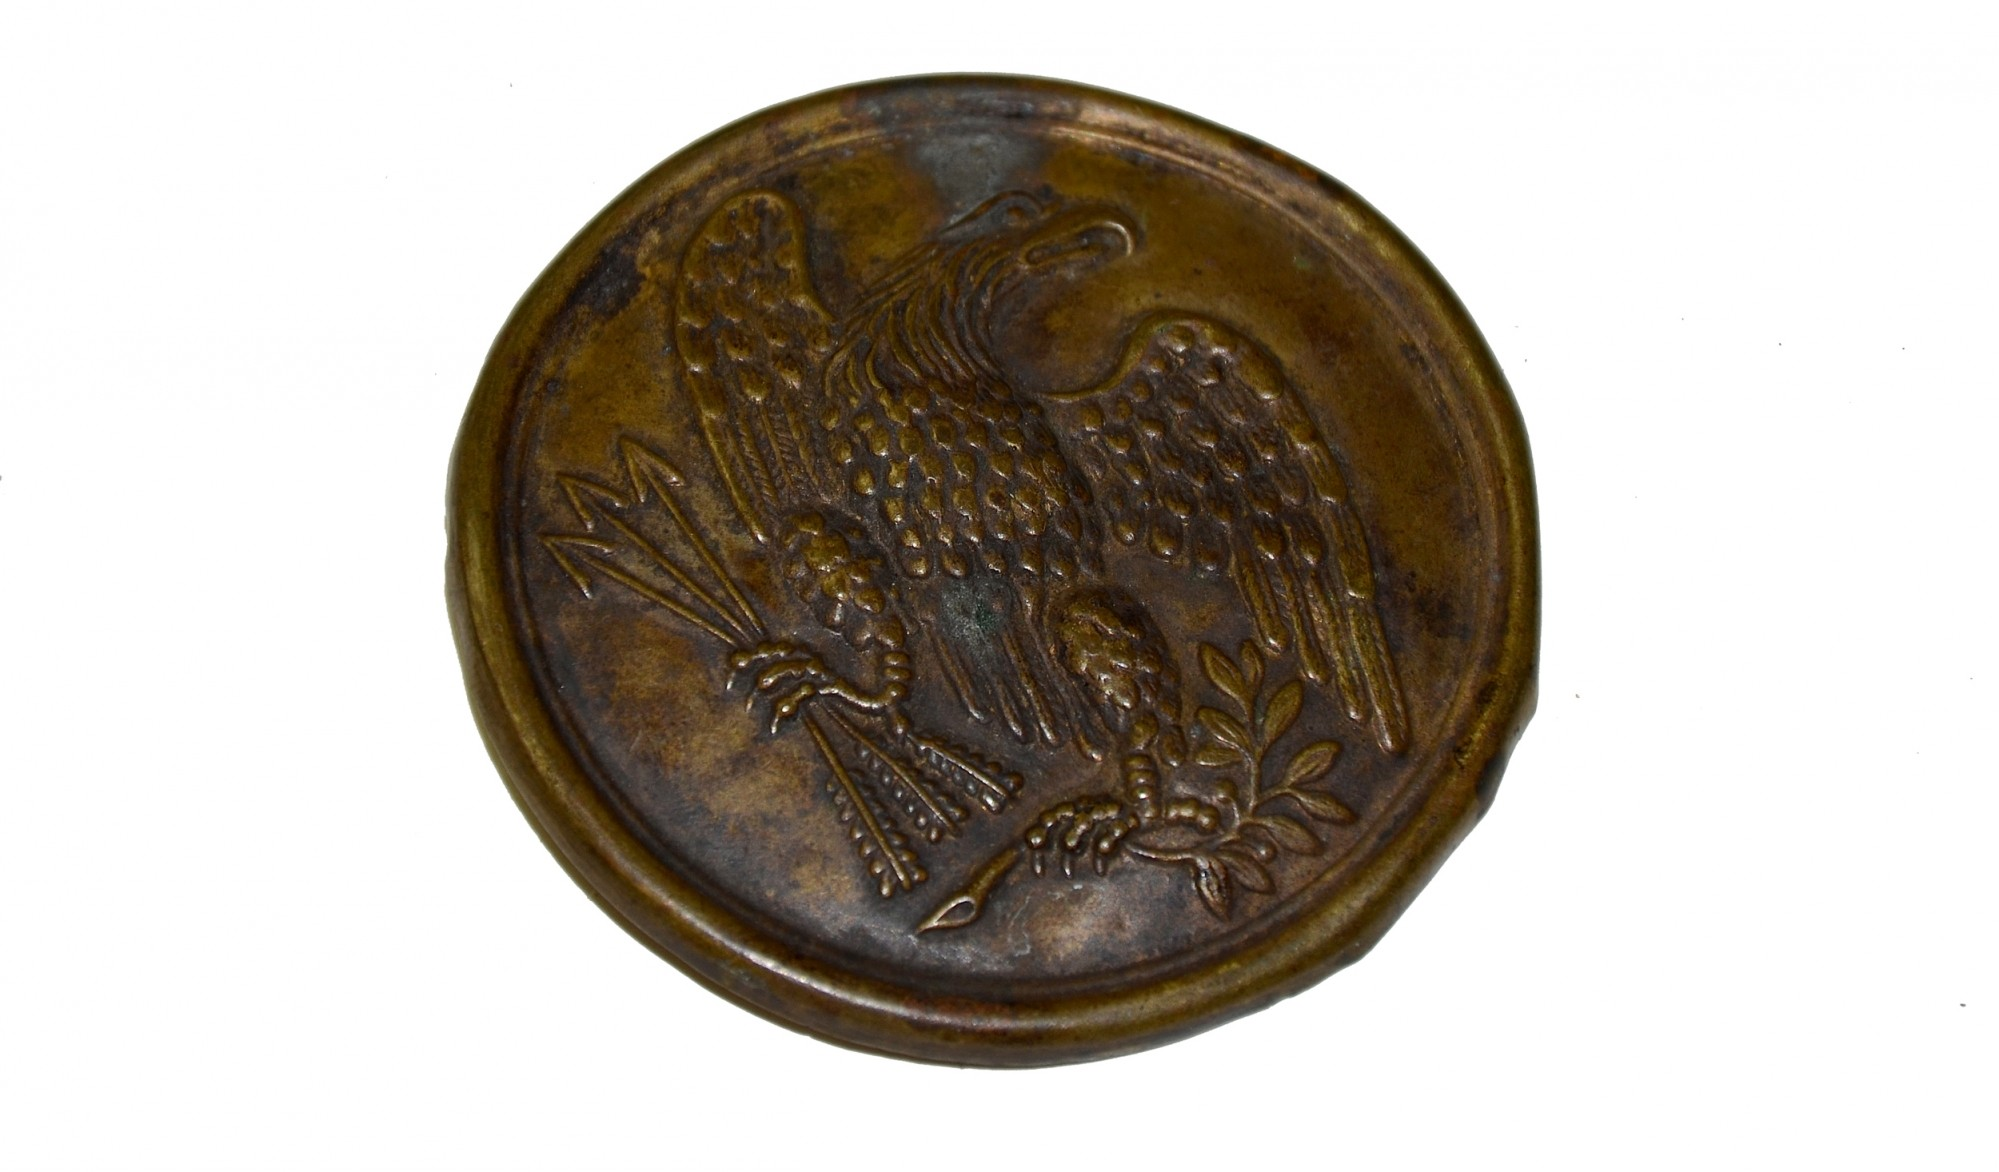 PATTERN 1826 EAGLE BREAST PLATE FROM THE GETTYSBURG ROSENSTEEL COLLECTION